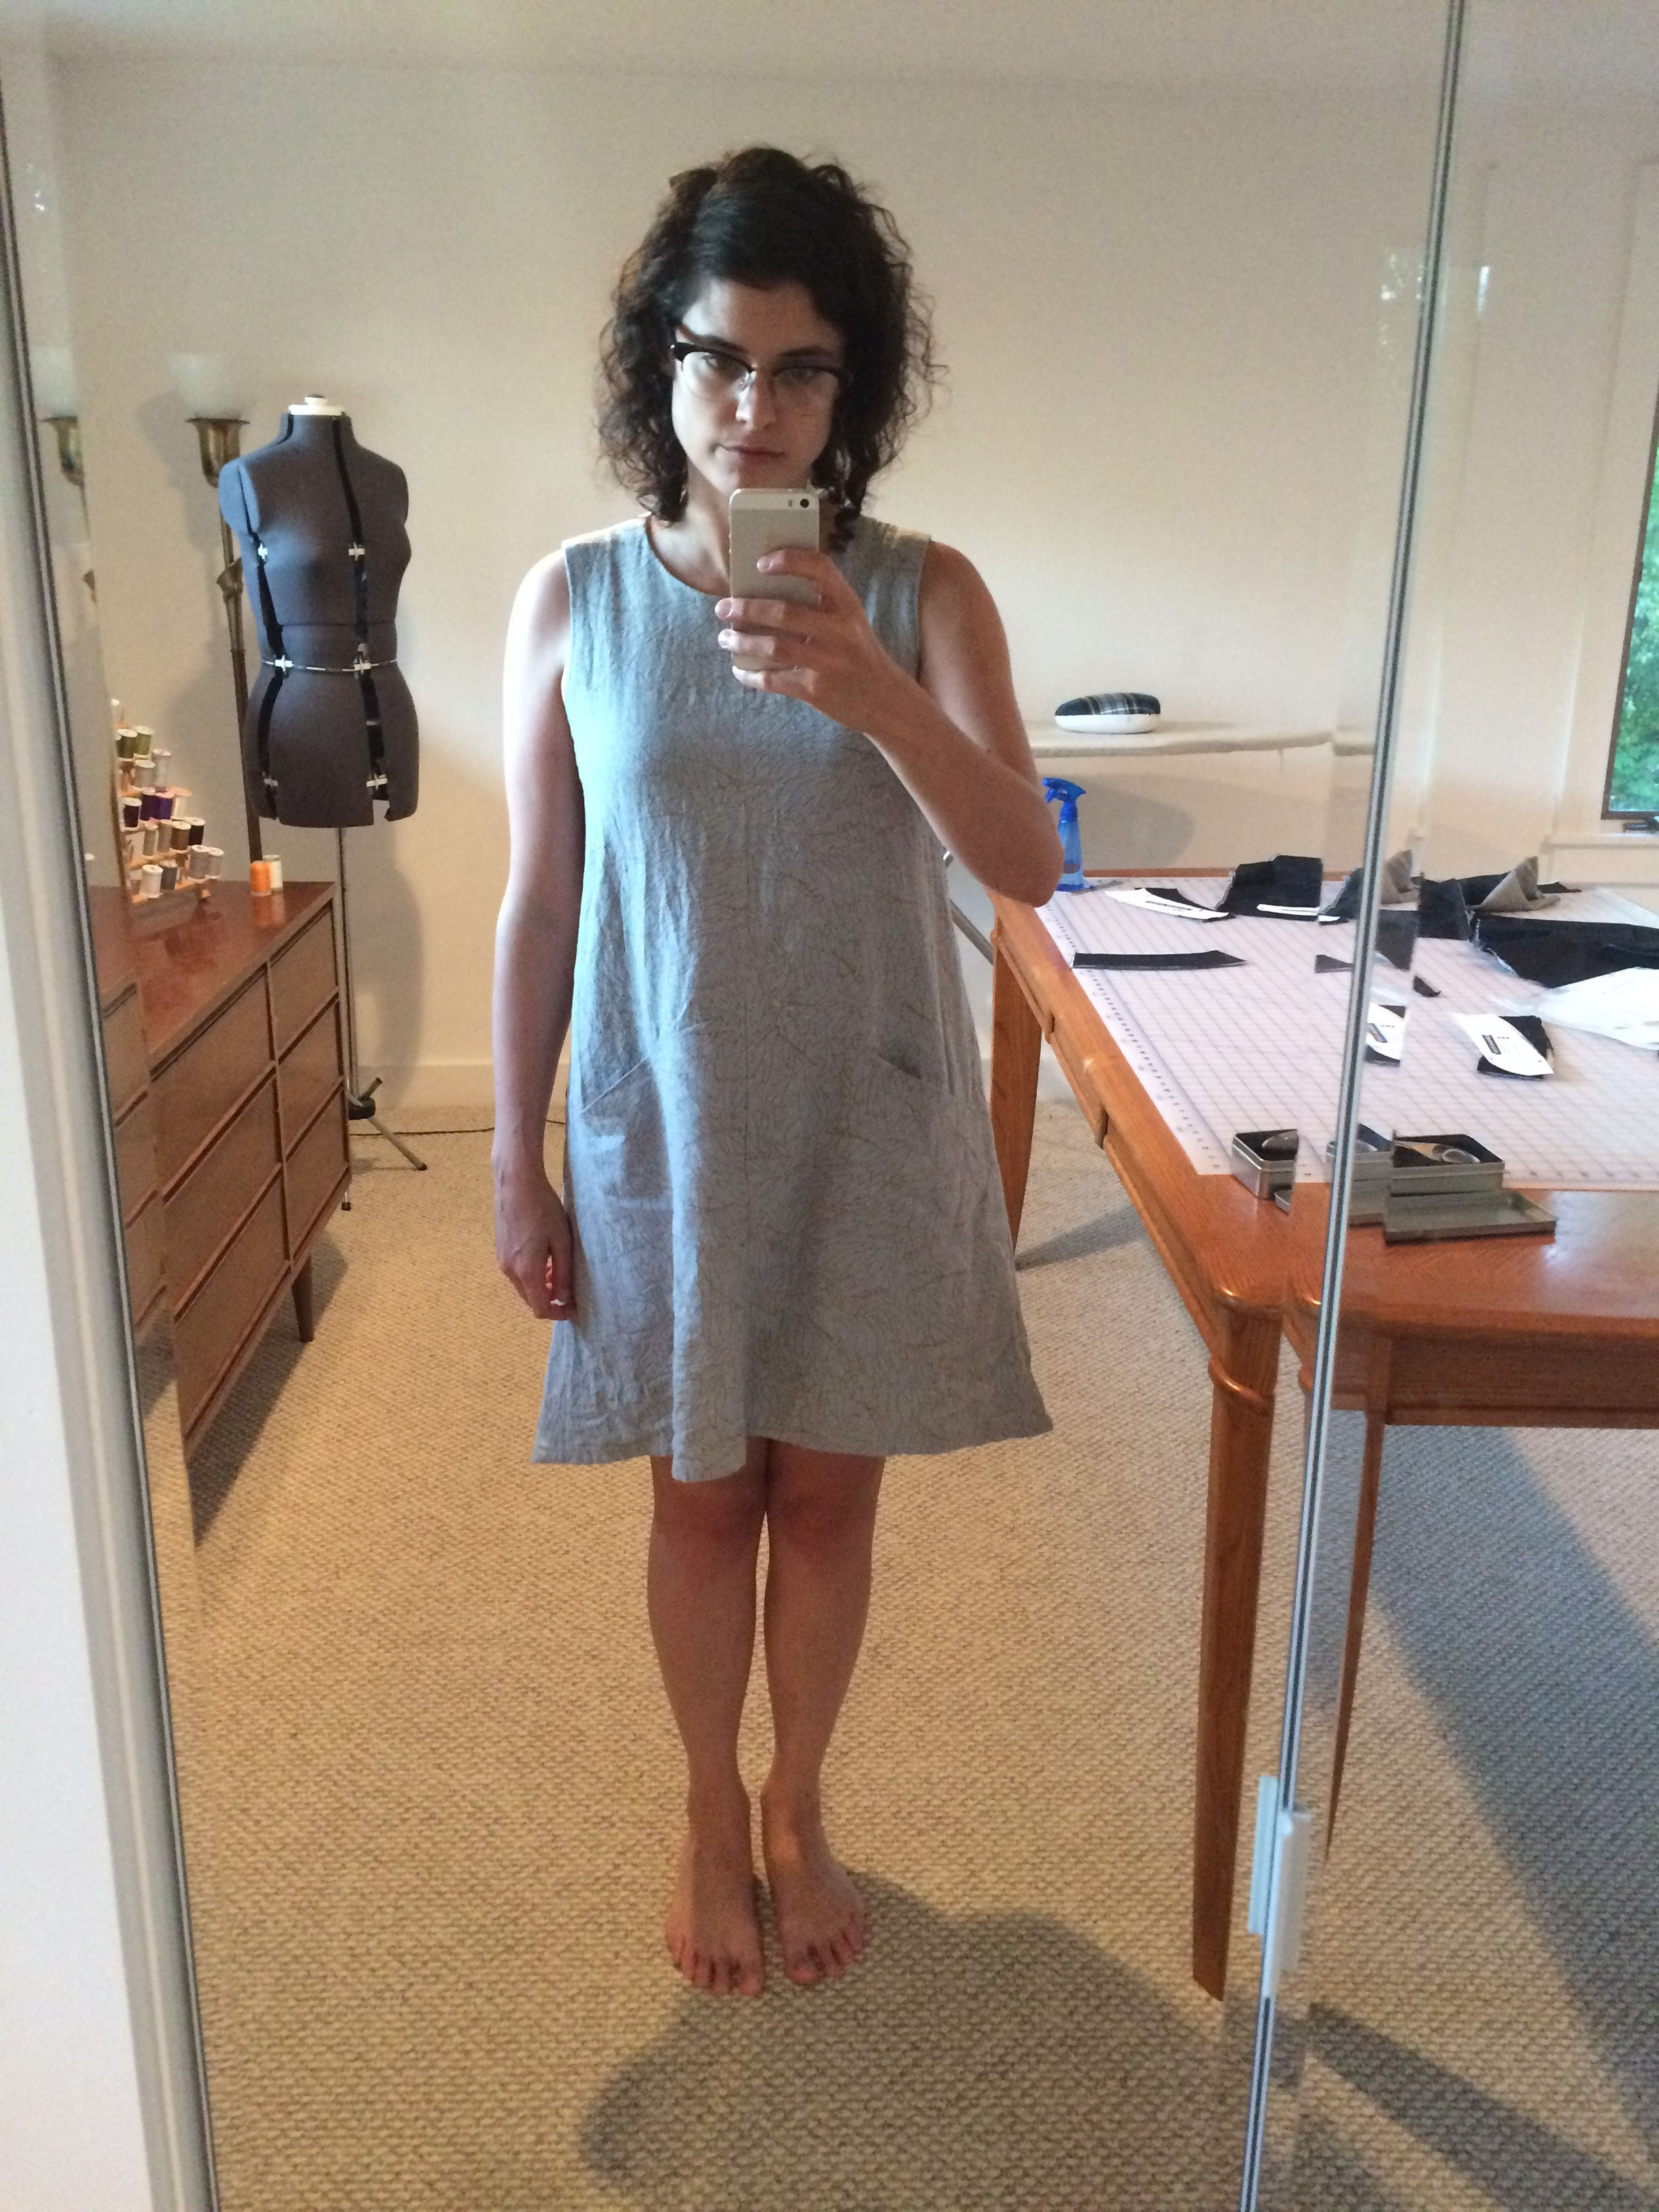 Linen blend Farrow dress is really comfortable but not particularly flattering or my style